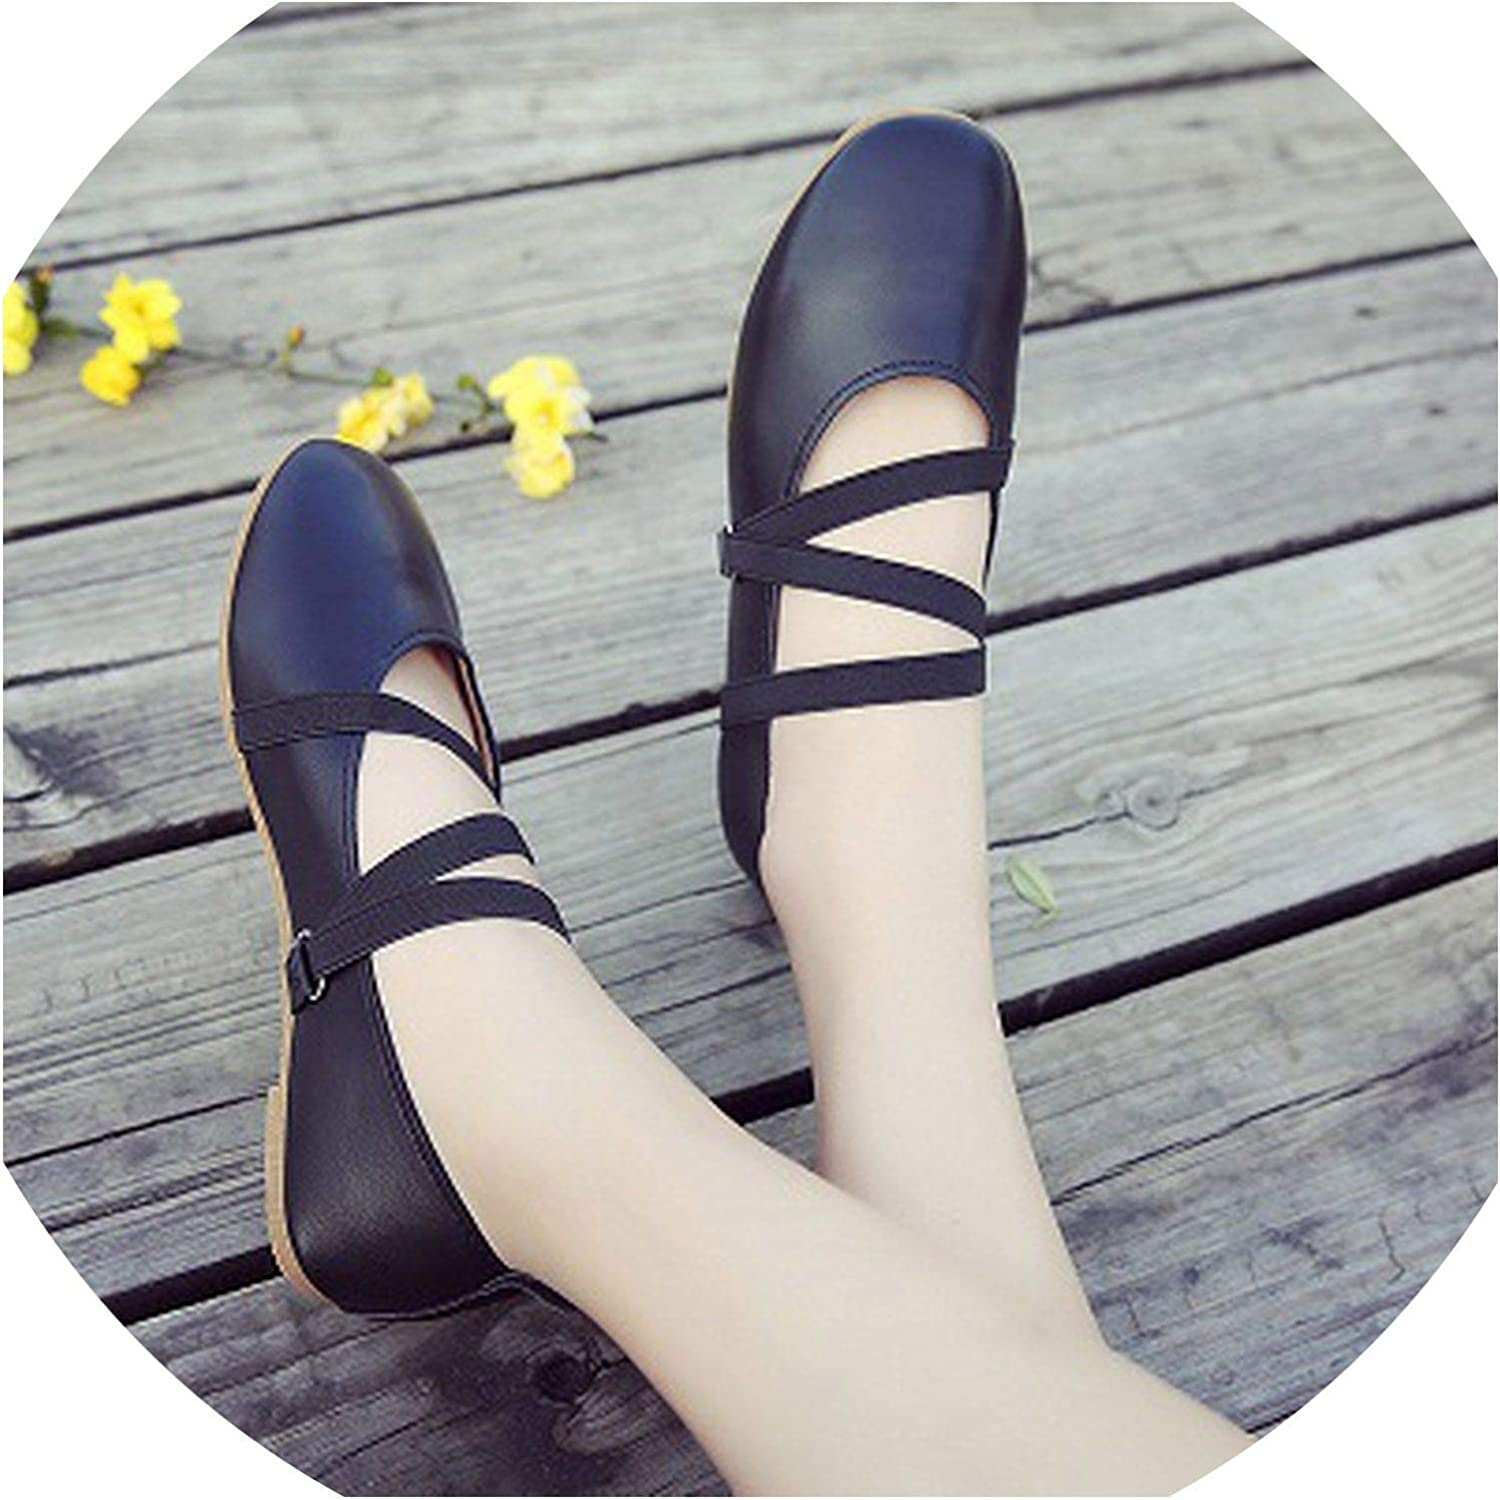 FAT BABY Peas shoes Female Spring 2019 New Mori Girl shoes Flat Shallow Mouth shoes strapshoes